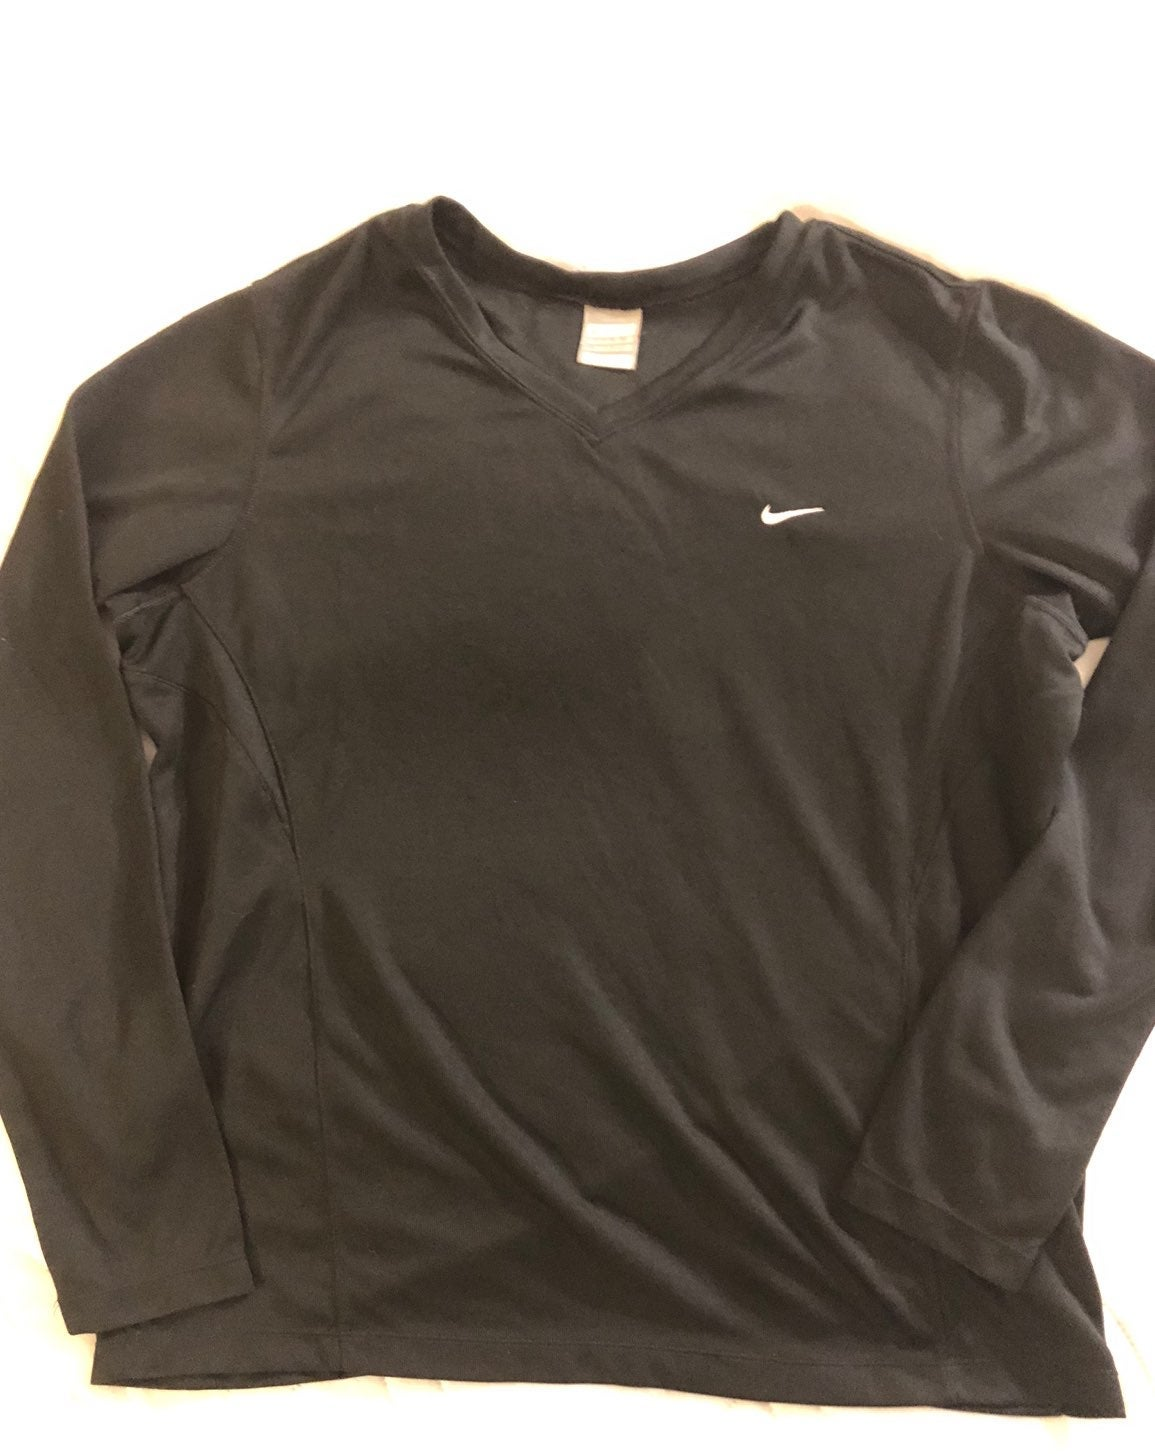 Nike long sleeve vneck